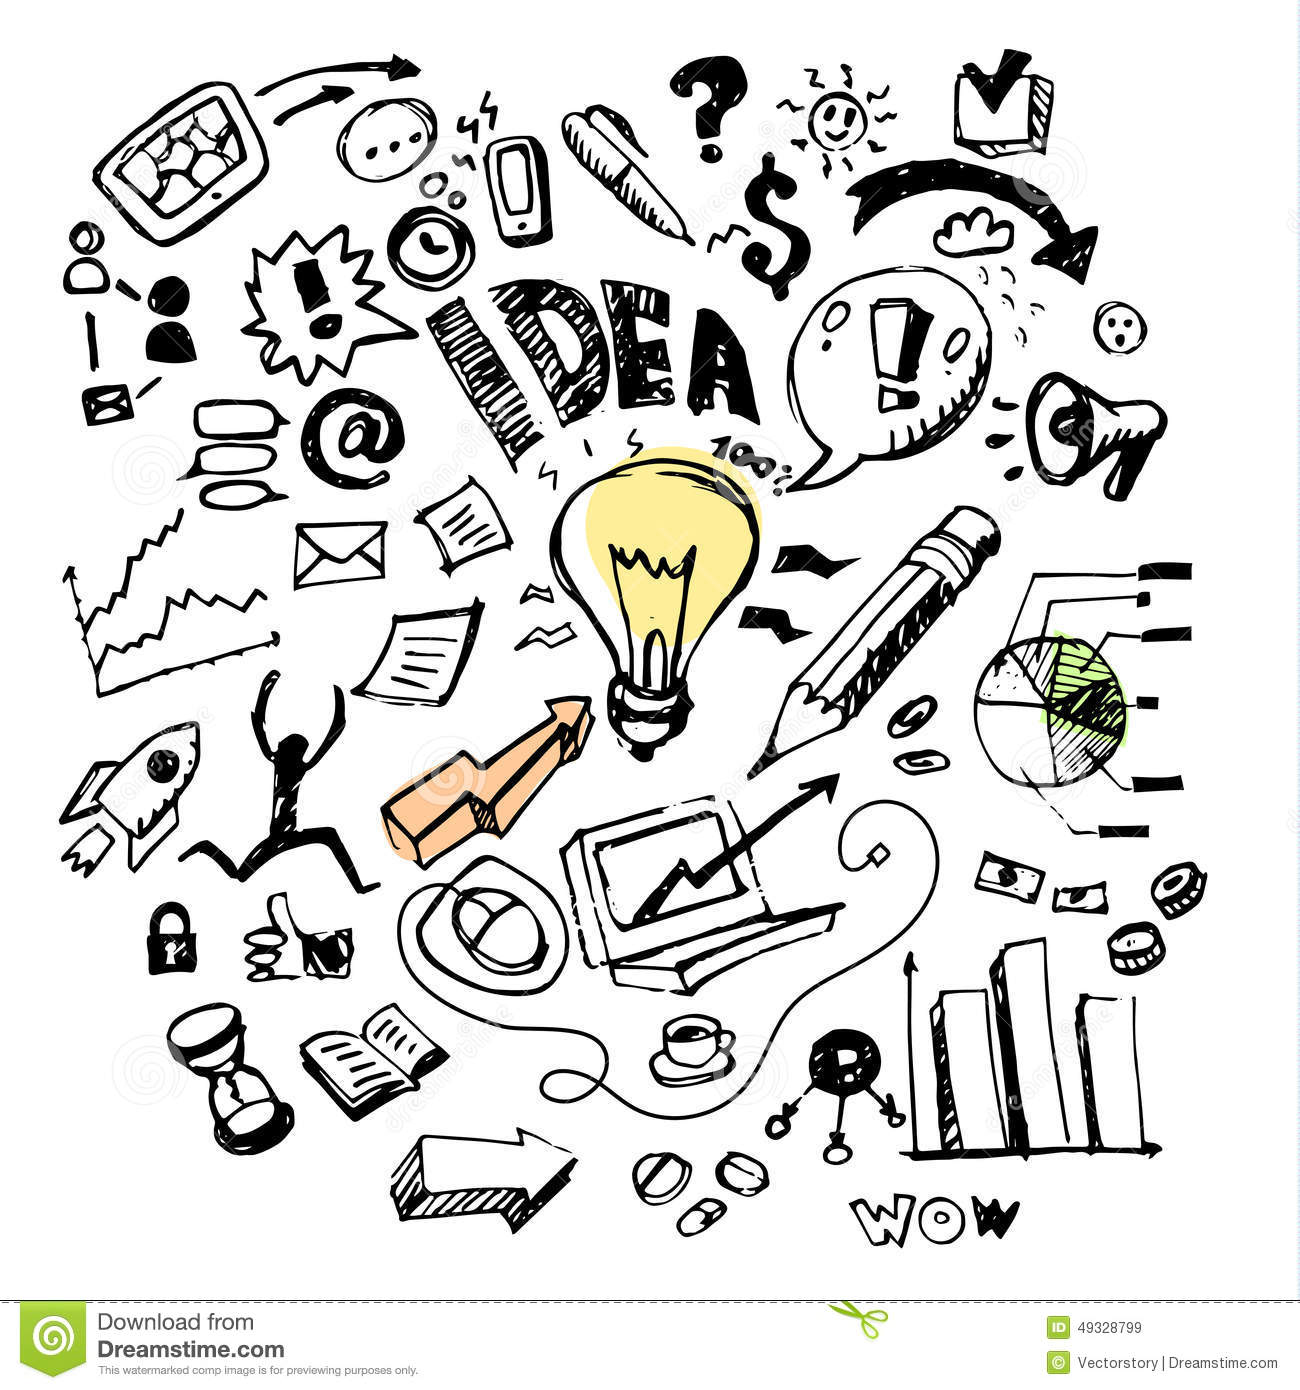 Business doodles. Idea stock illustration. Image of